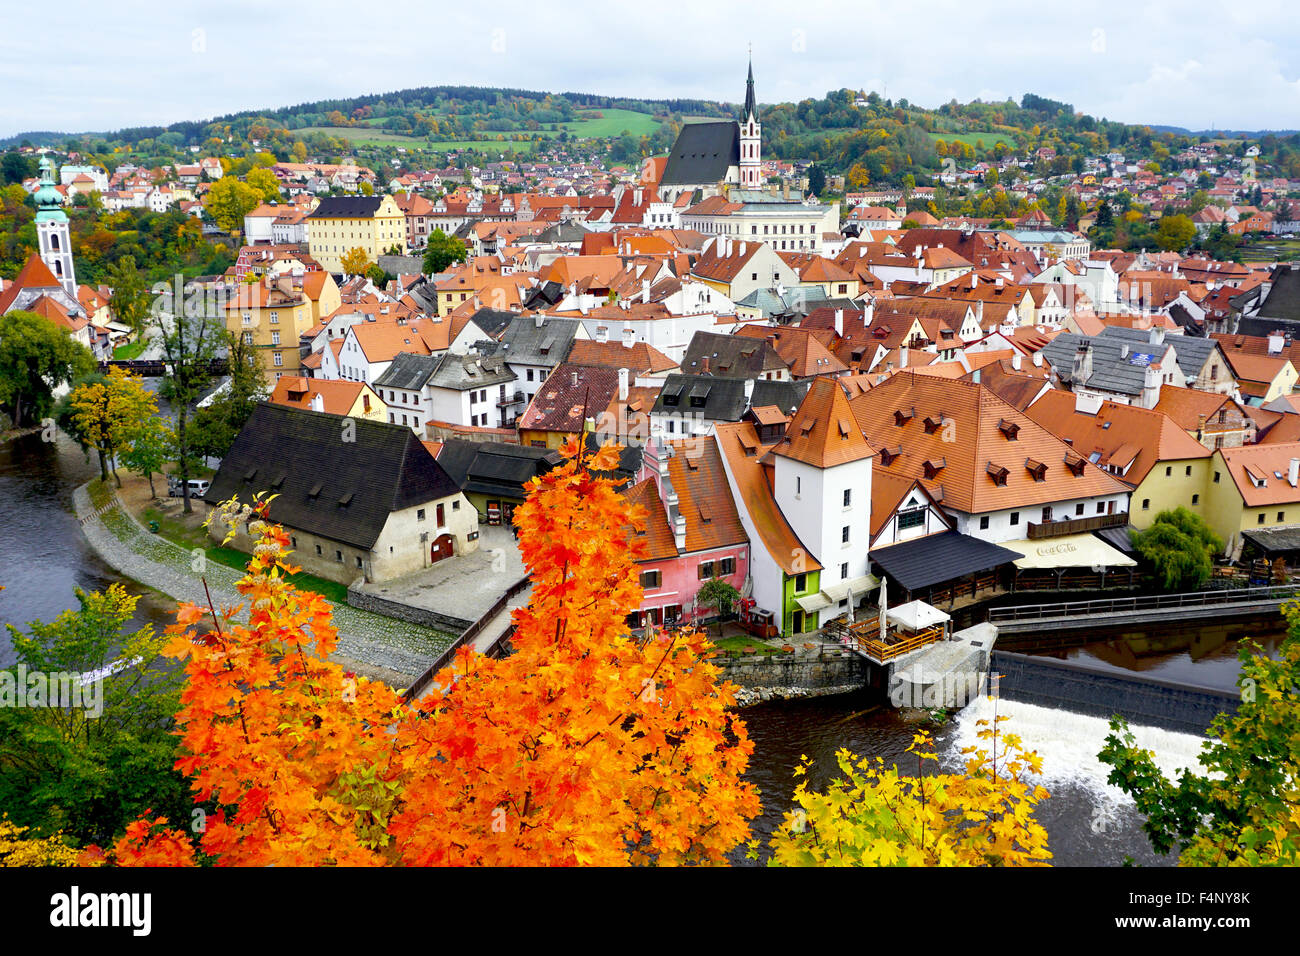 Viewpoints of Cesky Krumlov oldtown city and river in Autumn - Stock Image